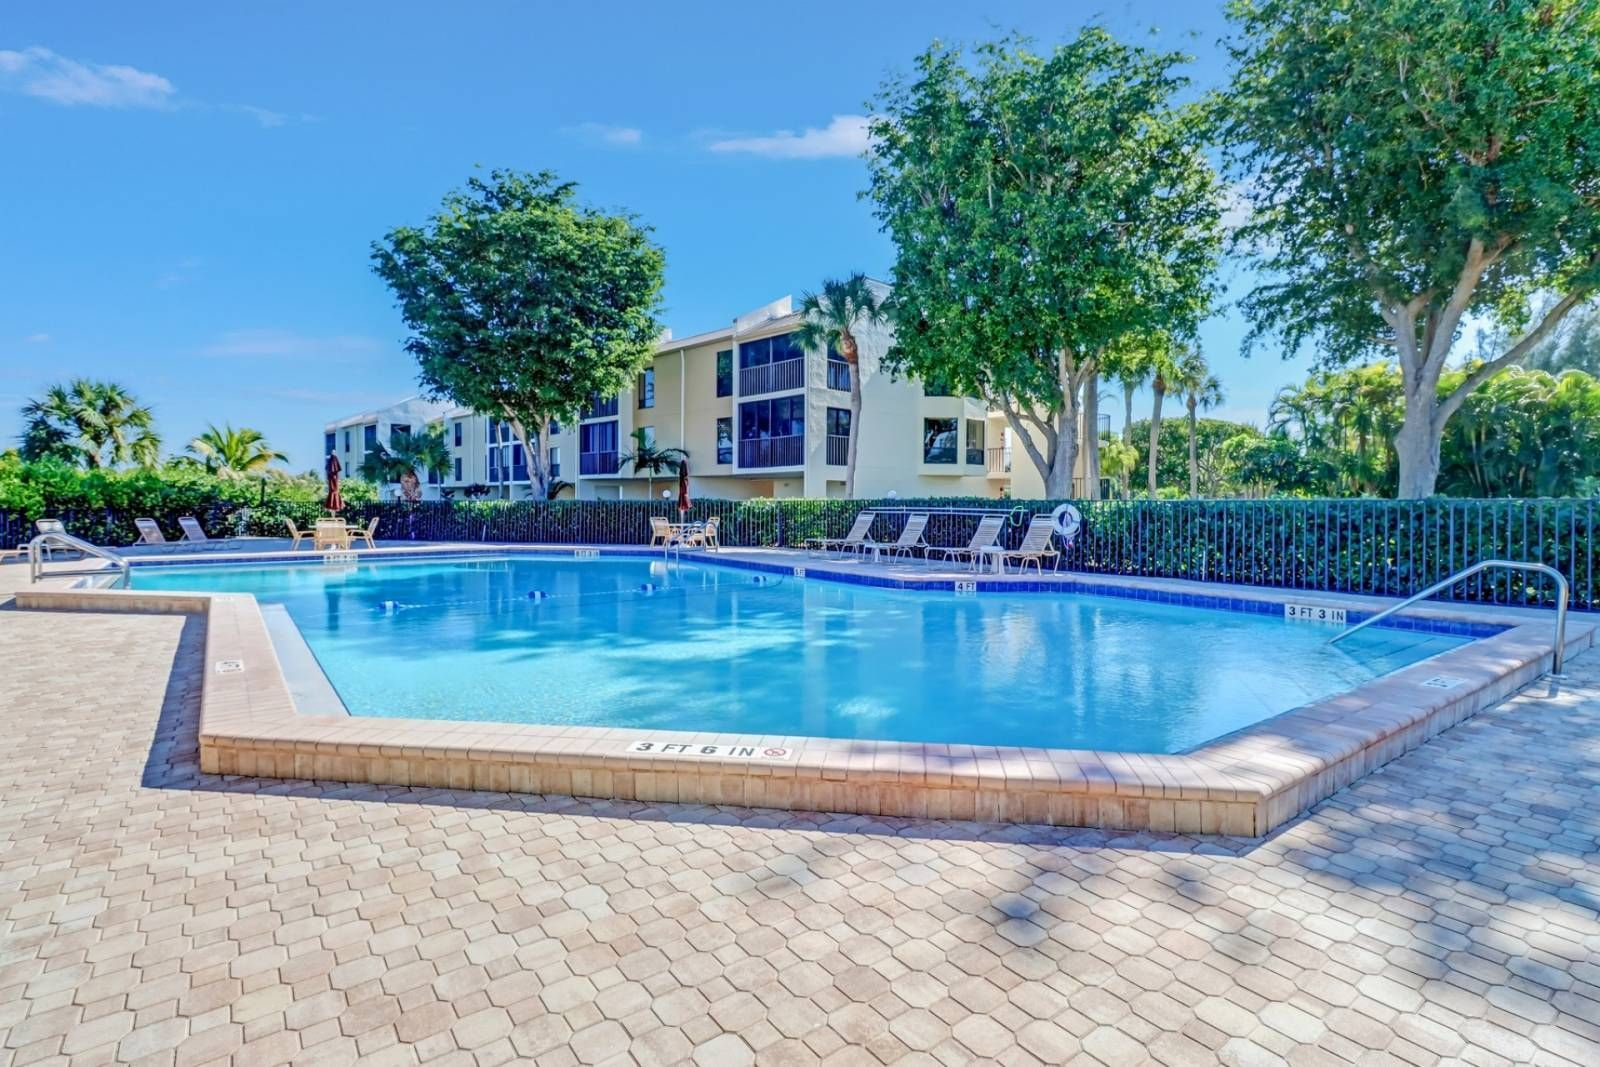 Fort Myers Beach Vacation Rental In 2021 Beach Vacation Rentals Fort Myers Beach Fort Myers